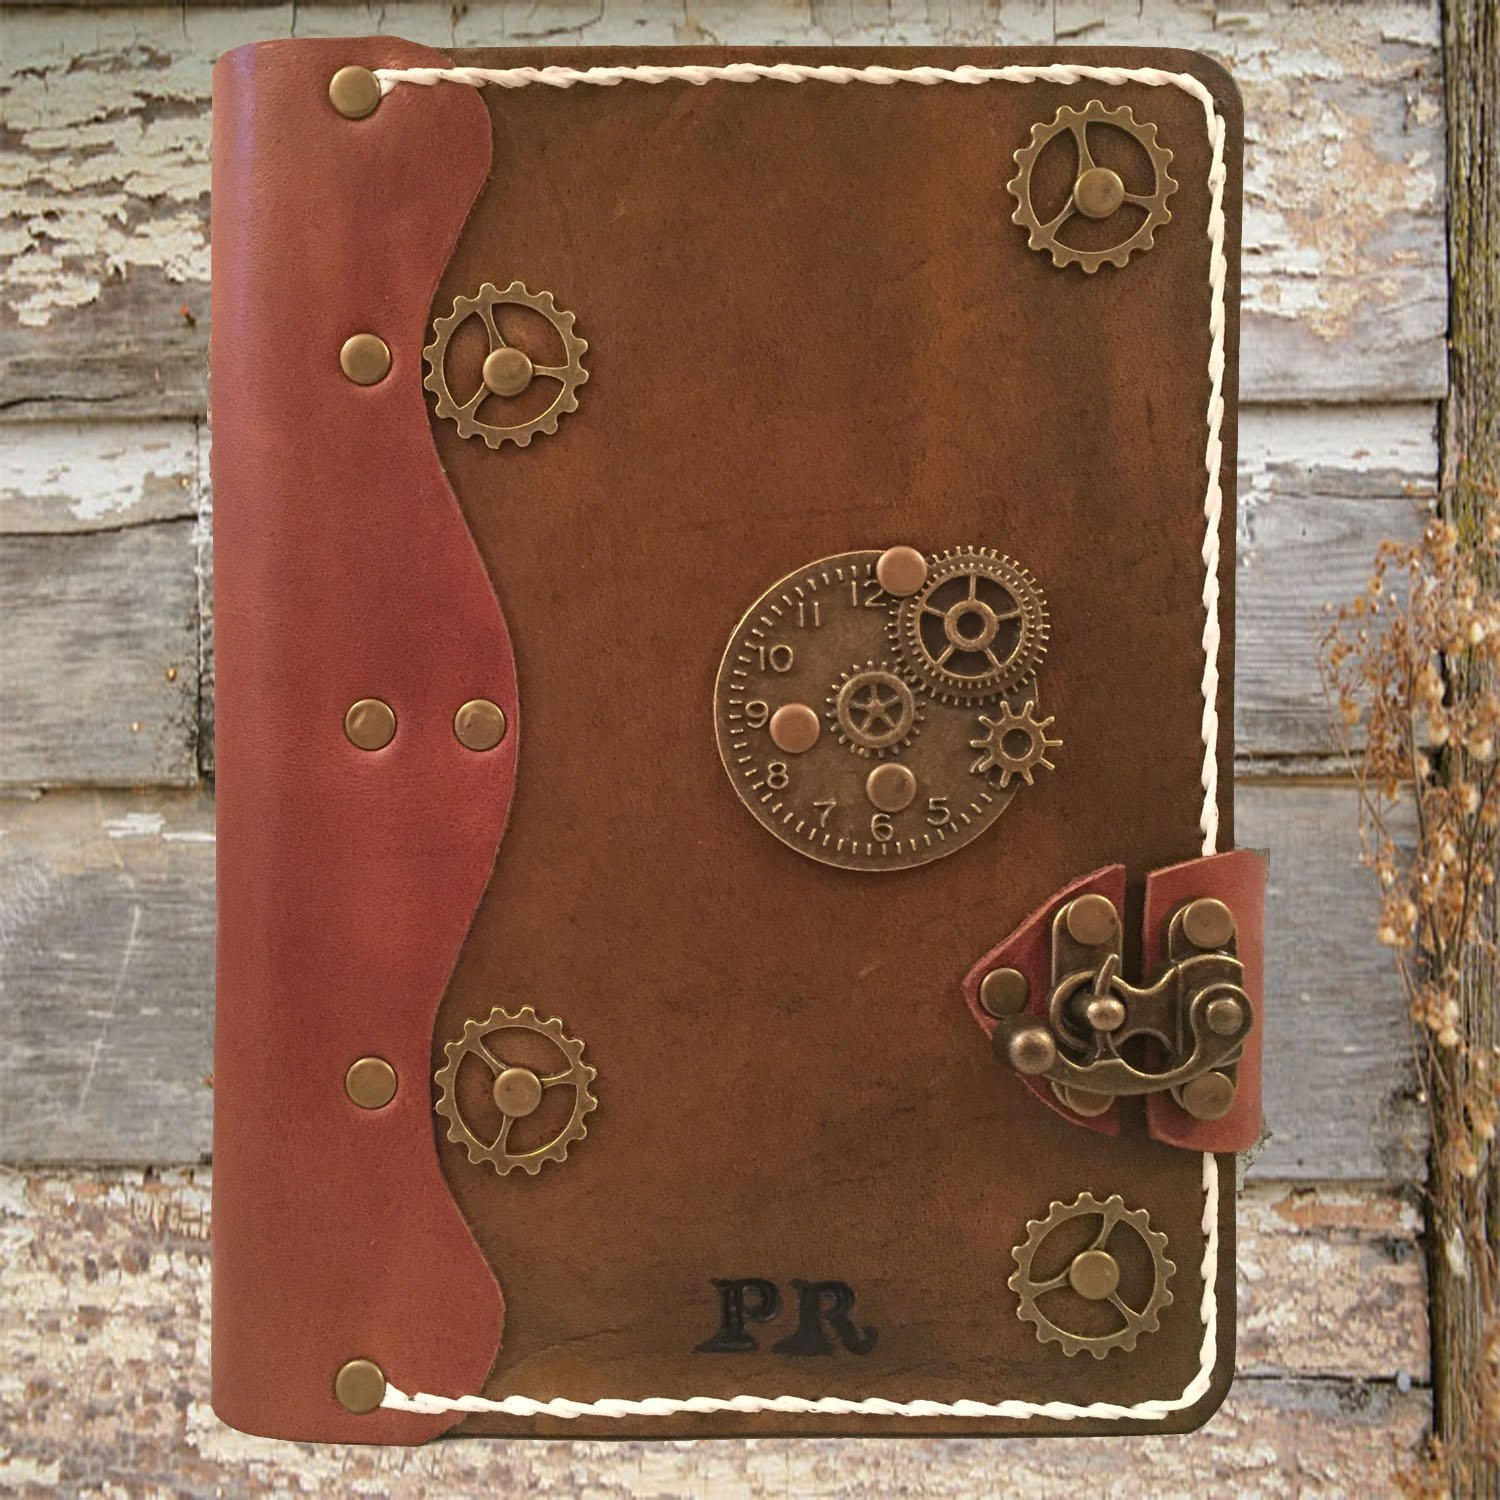 Handmade leather journal,refillable leather journal,personalized leather journal,steampunk leather journal,leather notebook,distressed leather journal,leather sketchbook by Papyrus Crafts